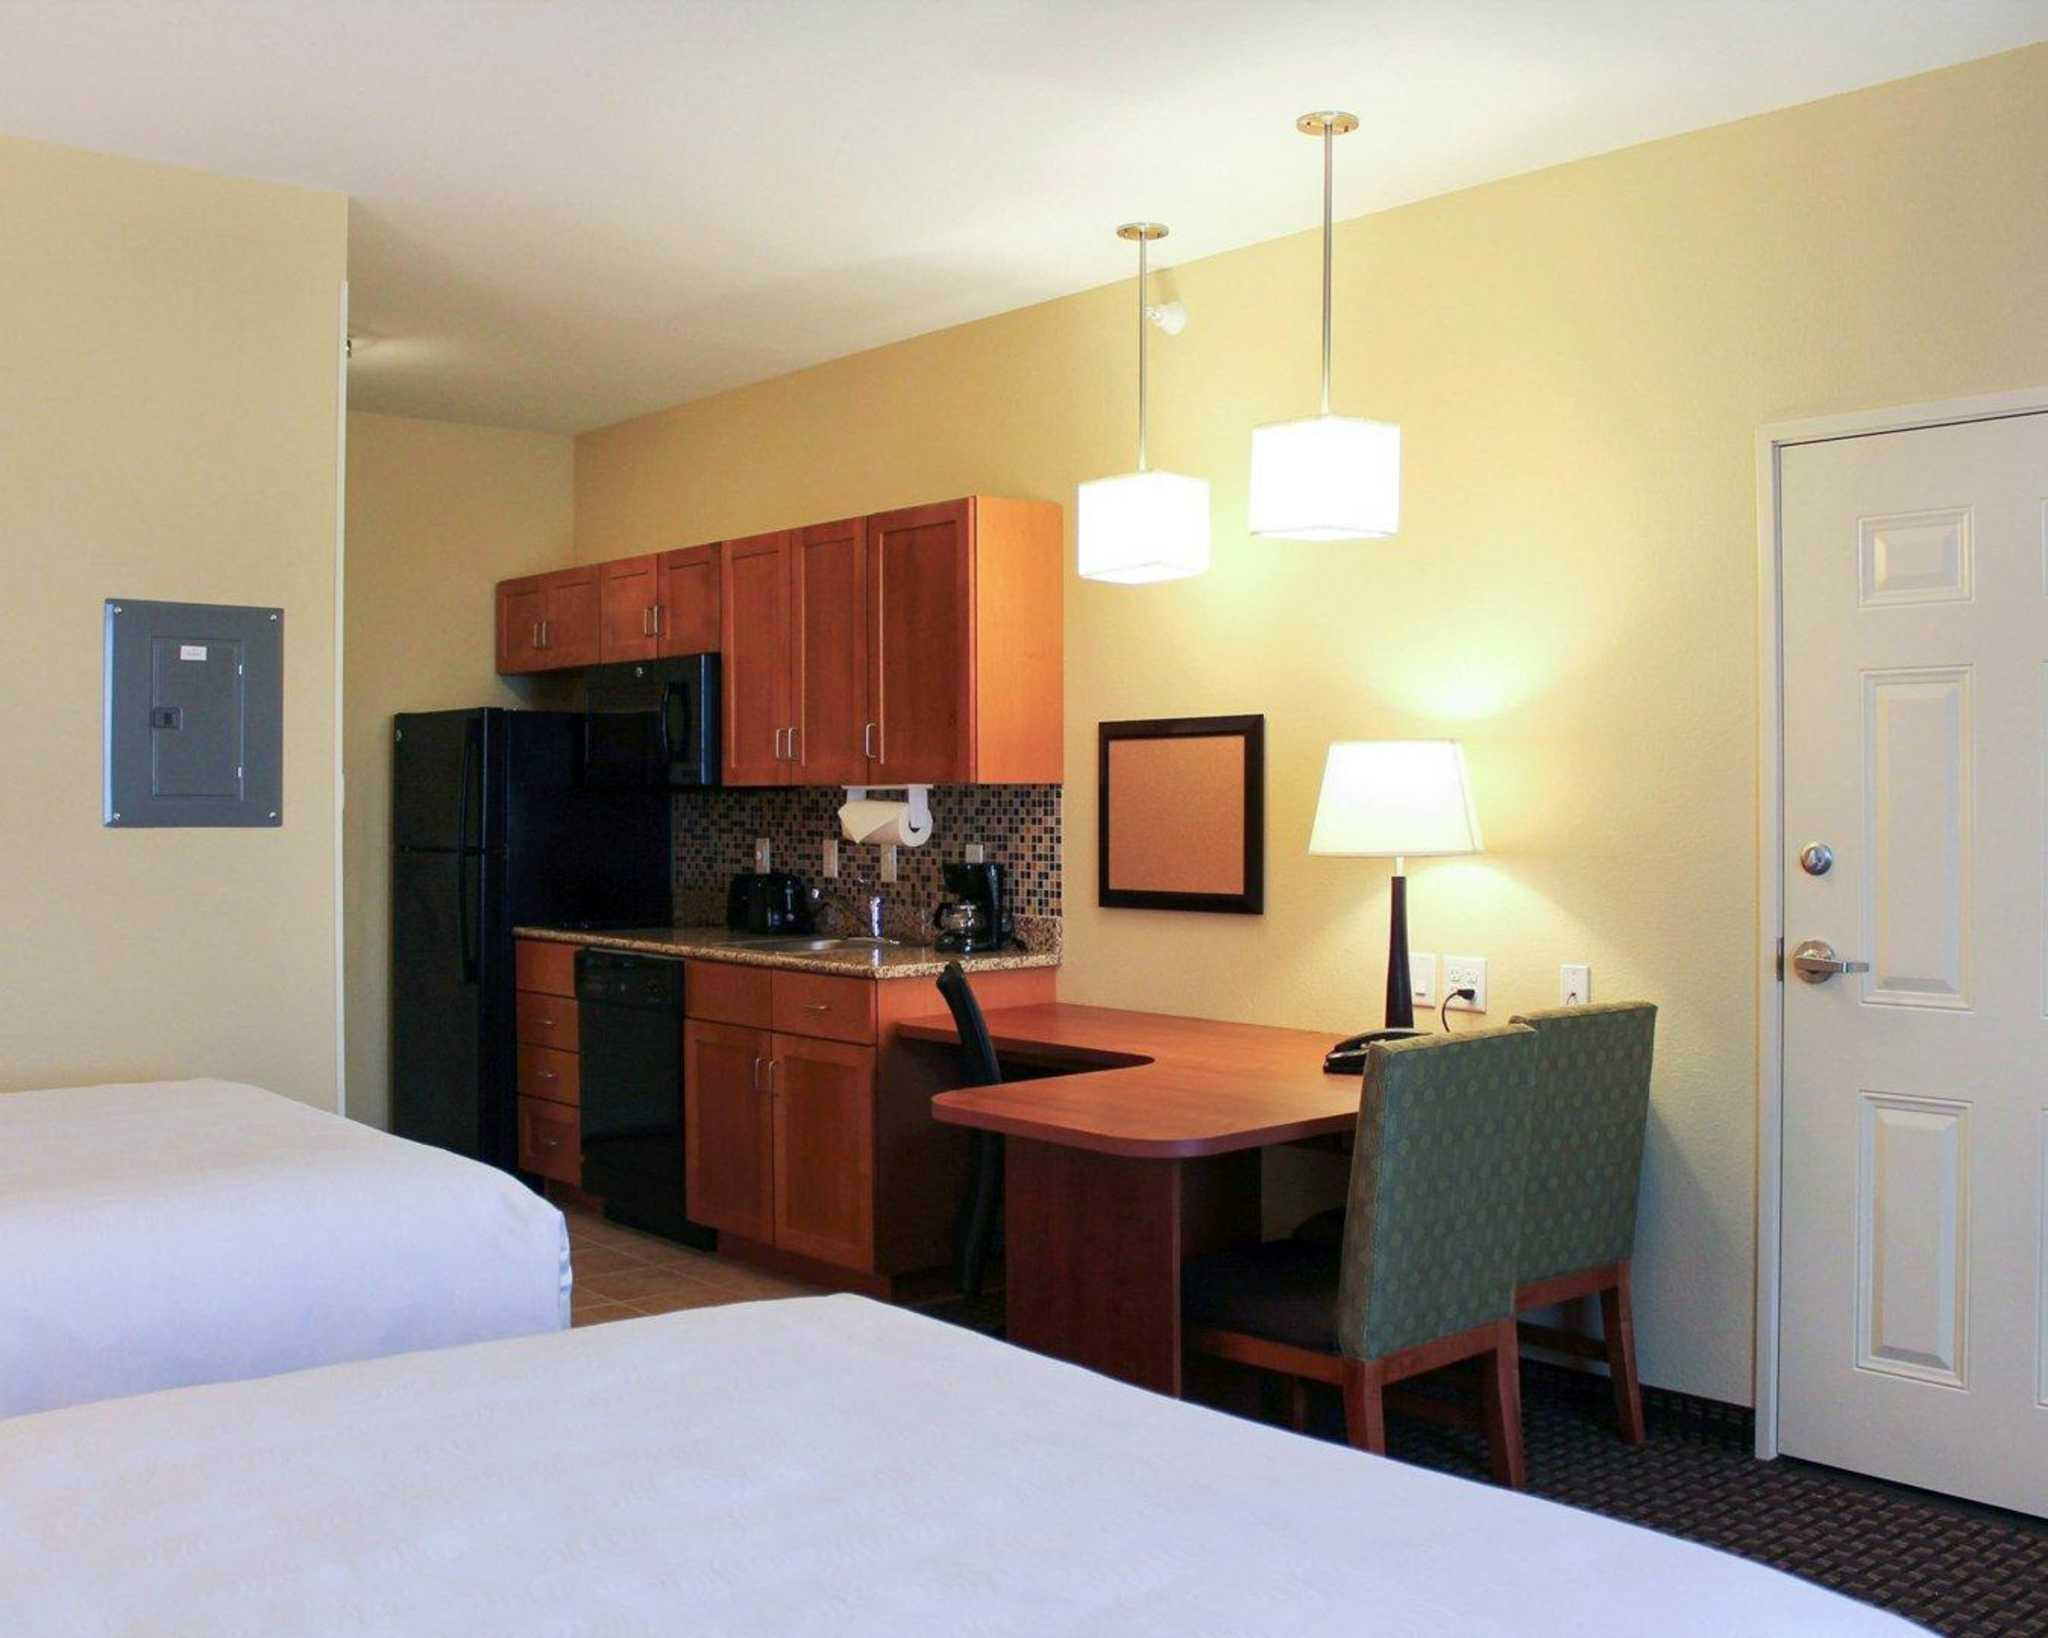 MainStay Suites Tioga image 0